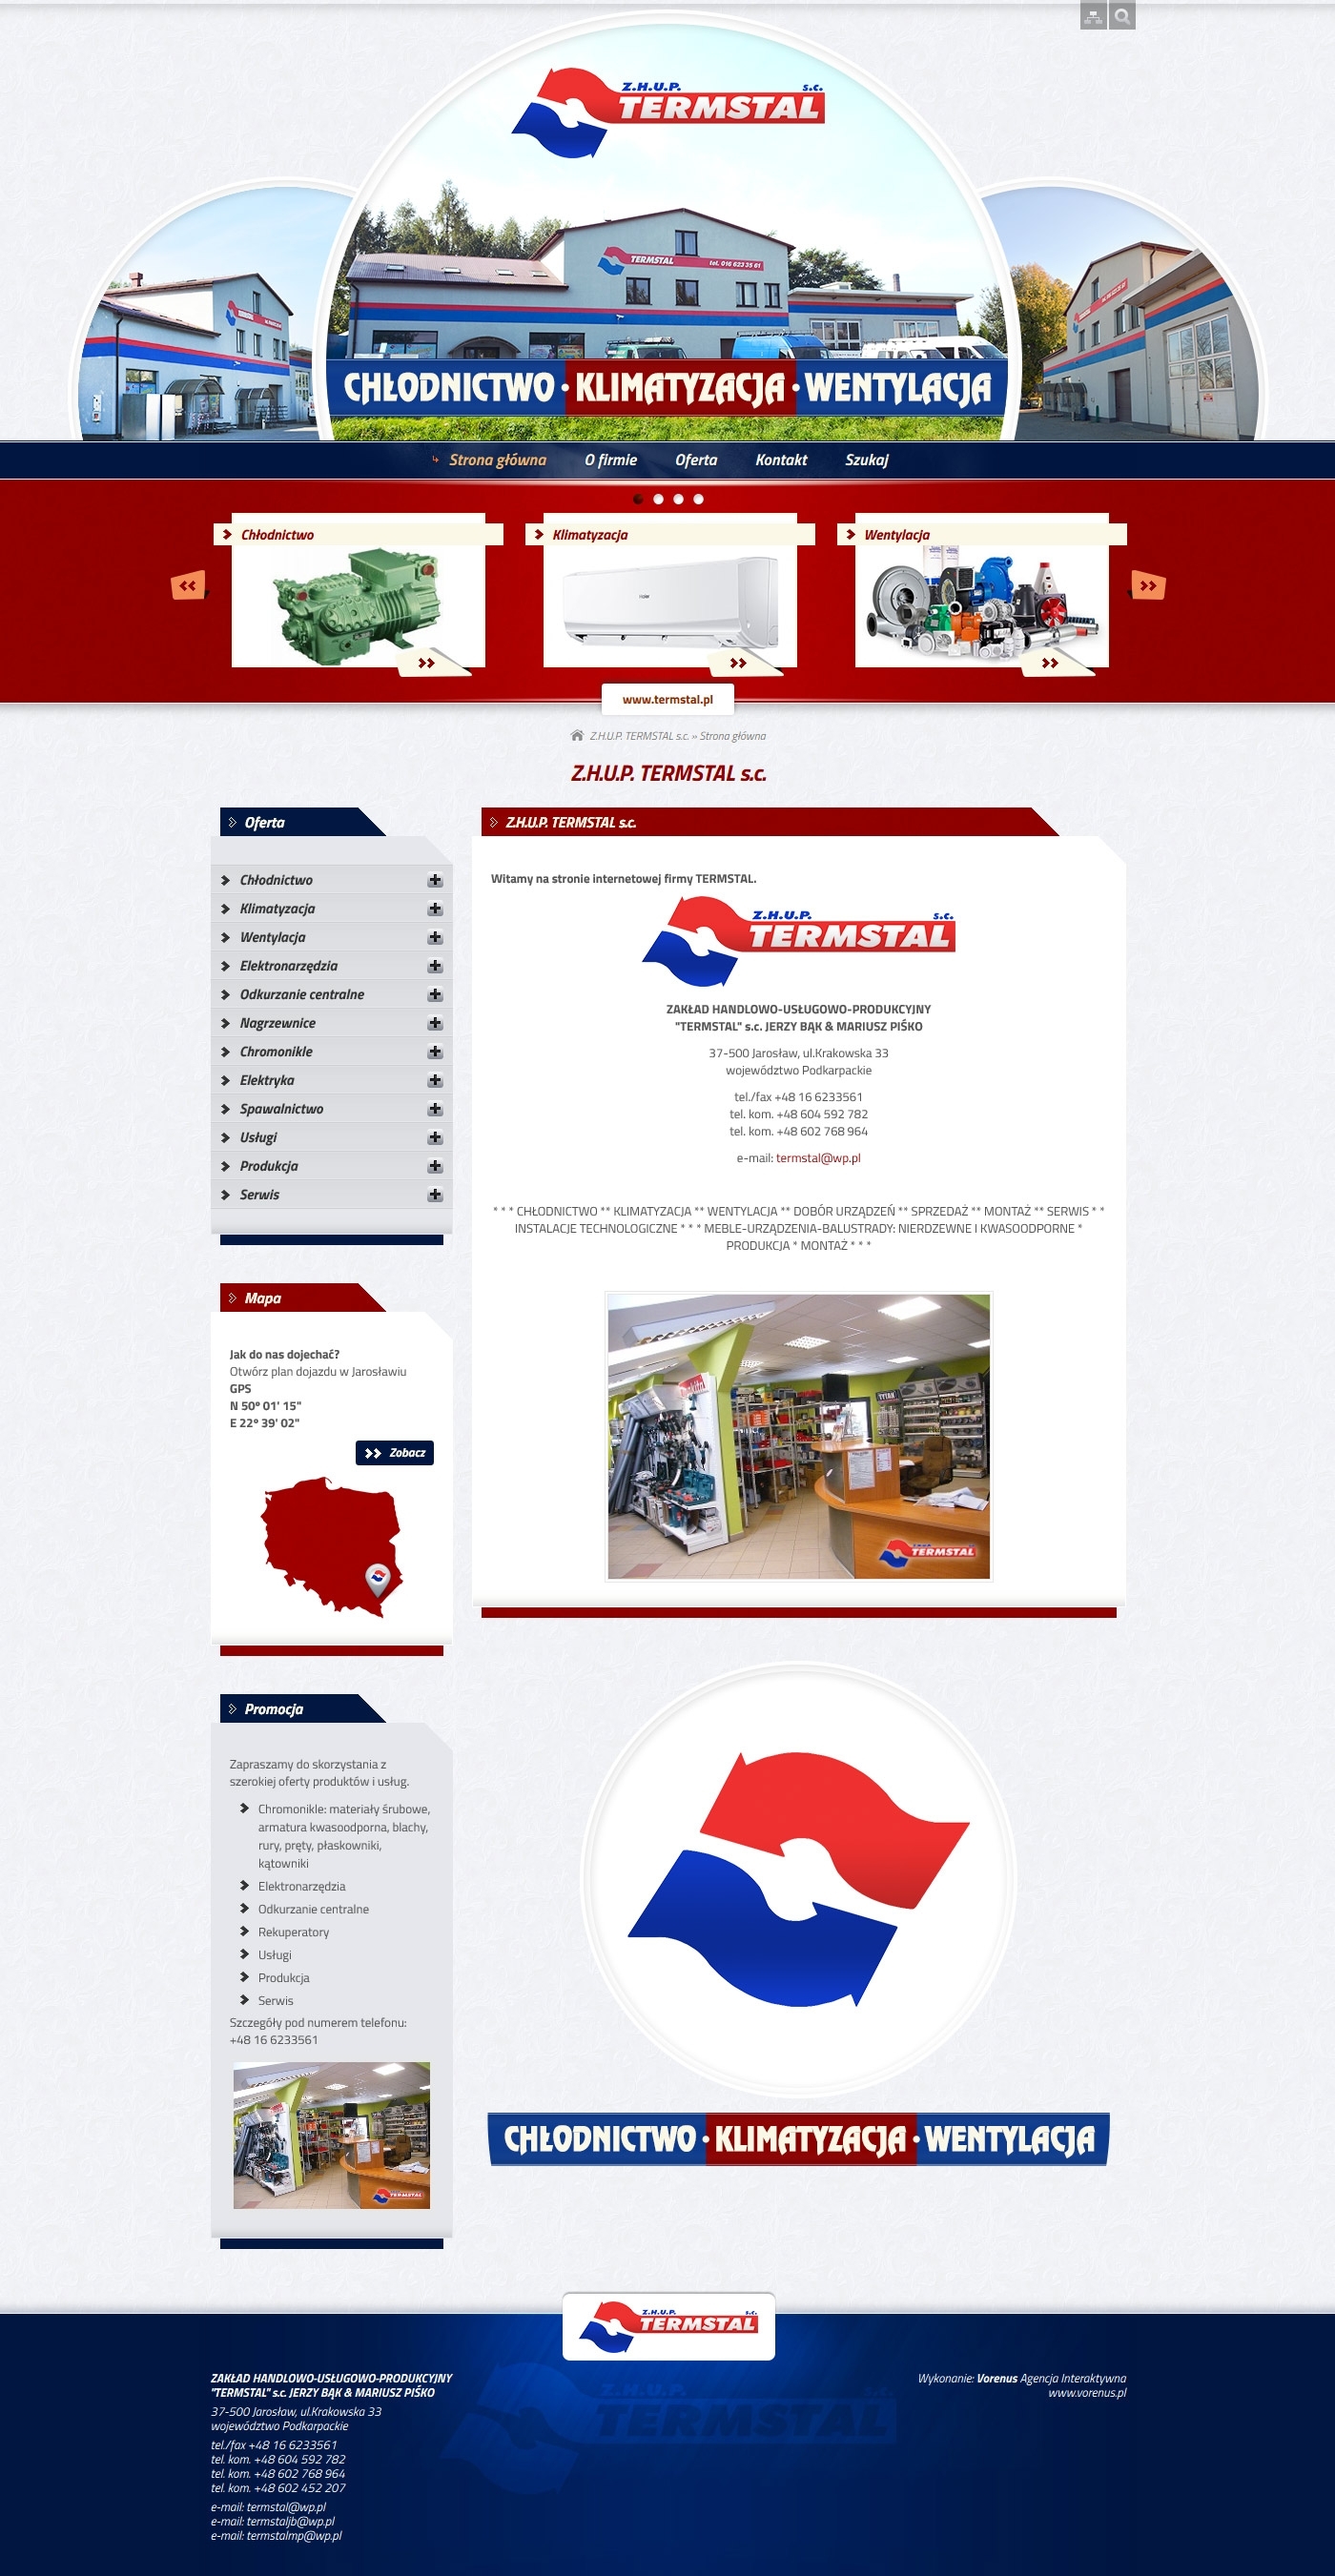 TERMSTAL - Home site